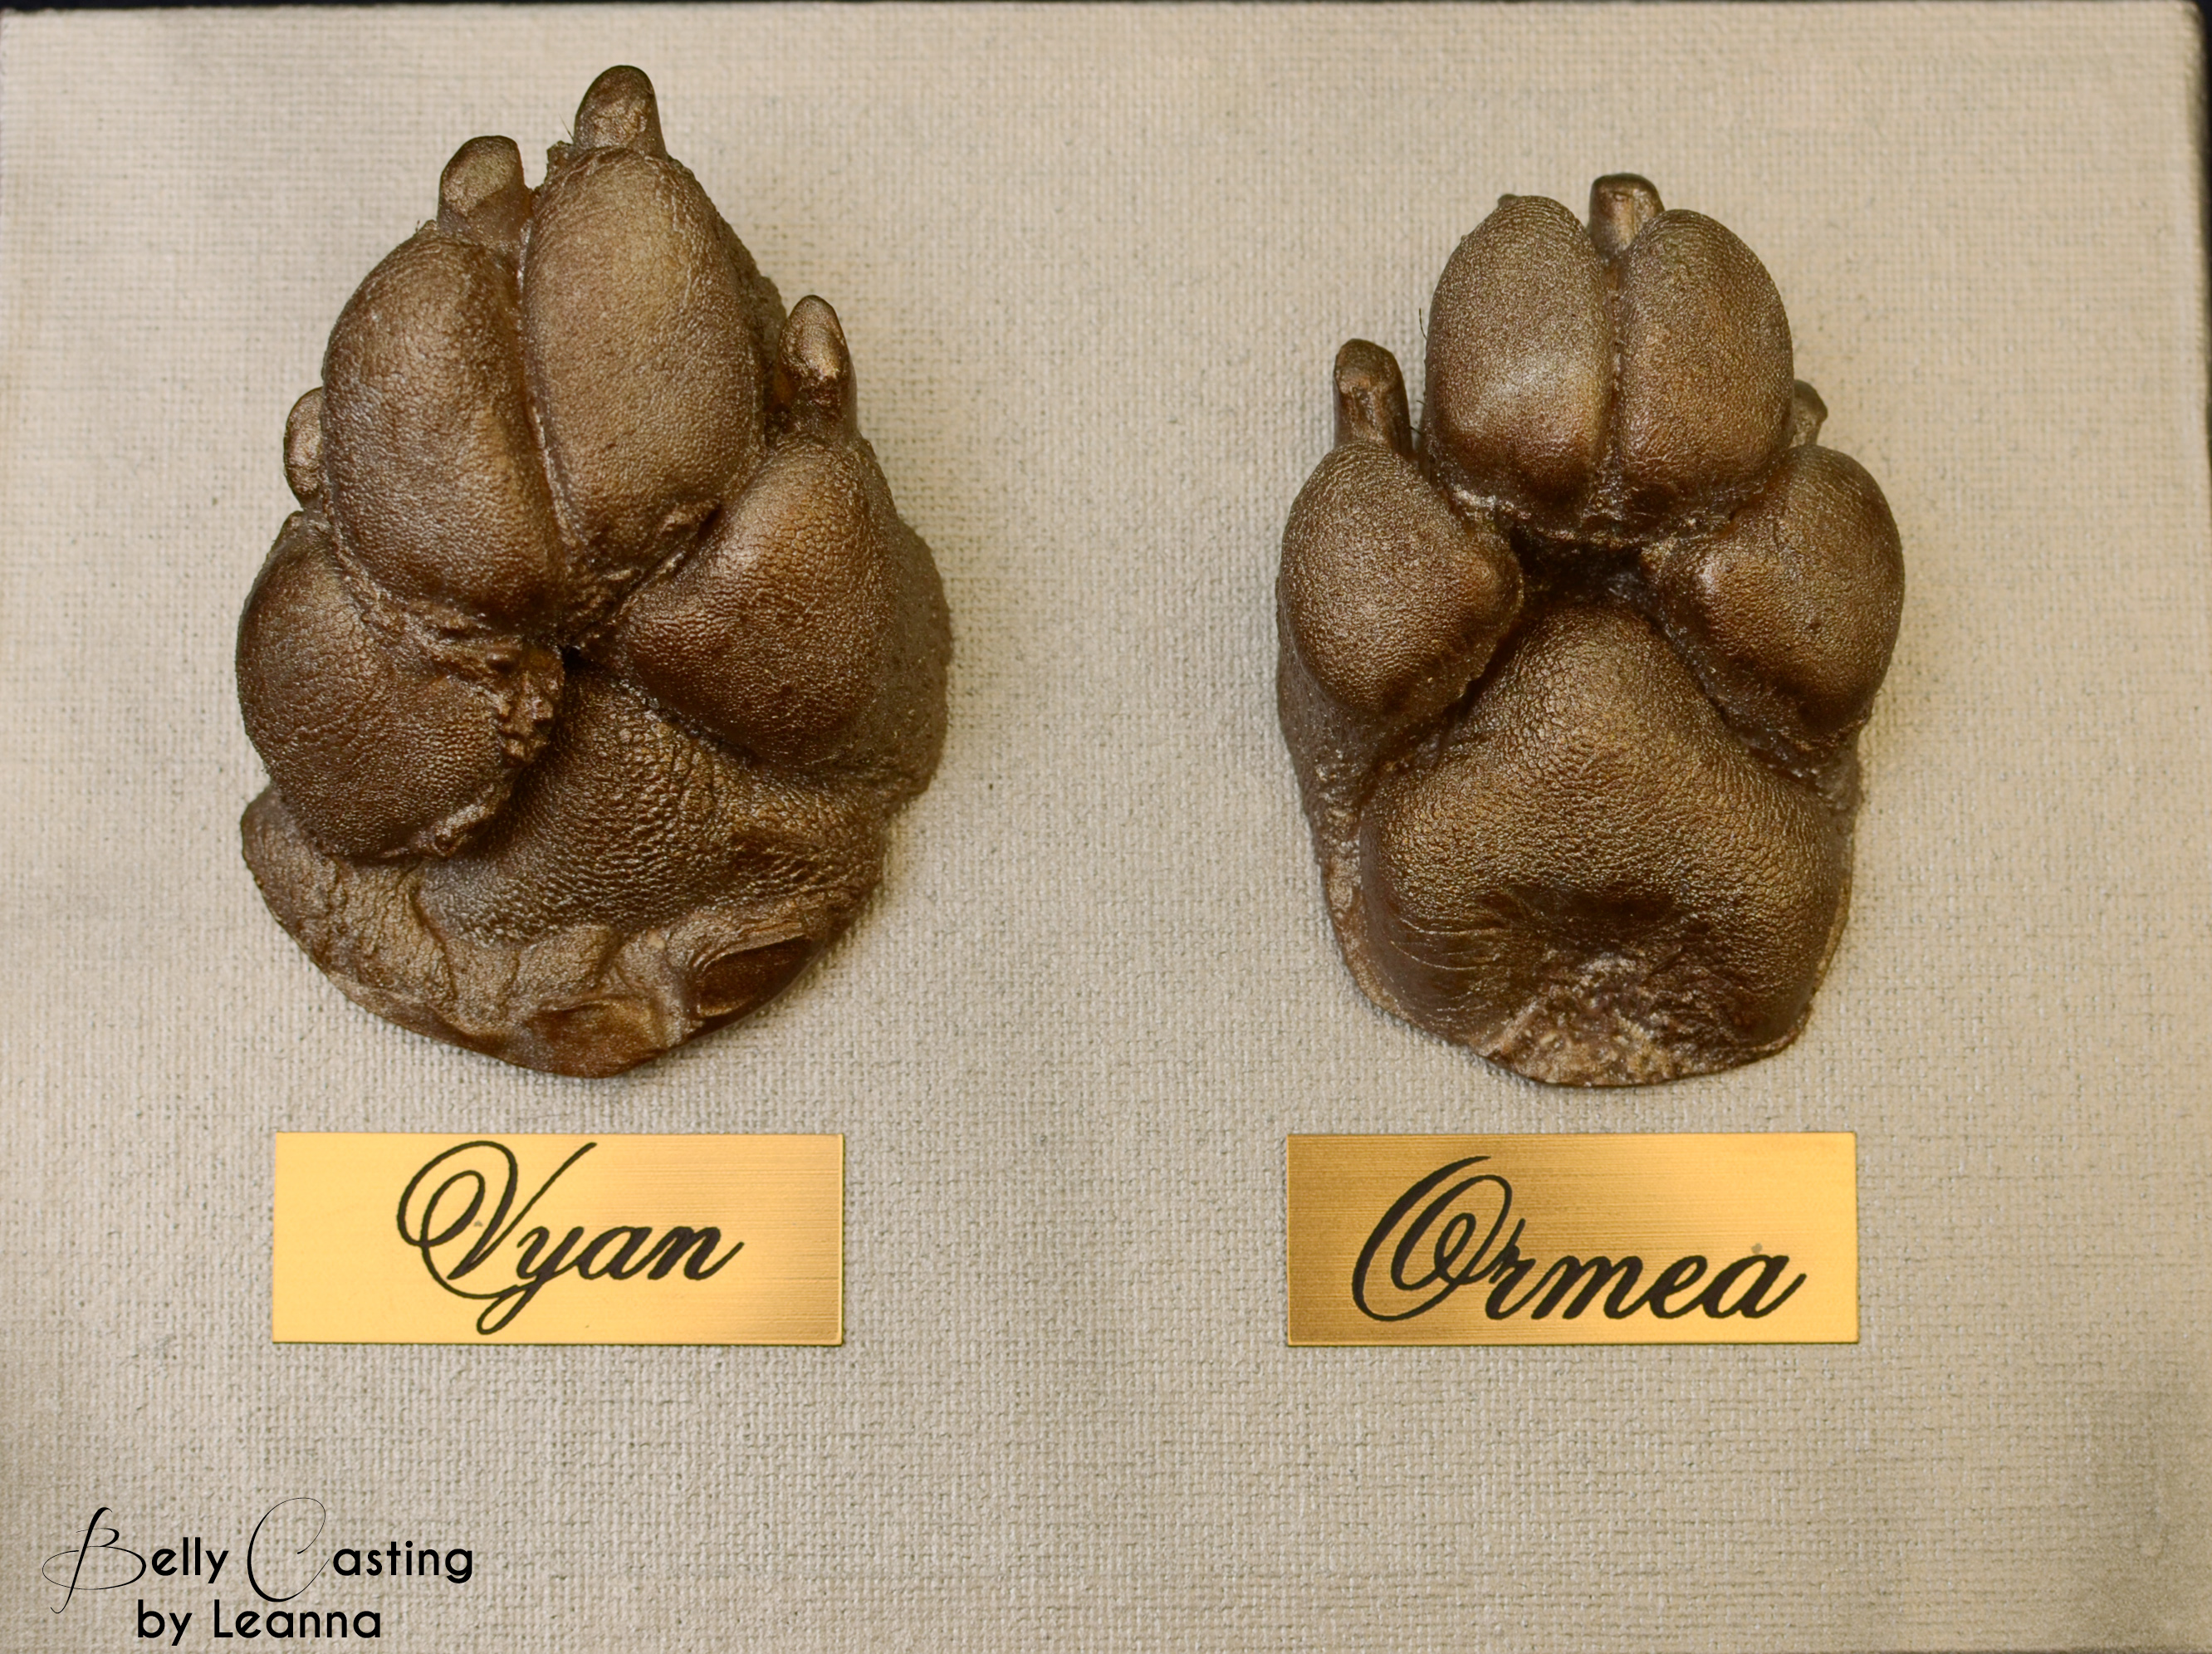 Ormea and Vyan Paw casting